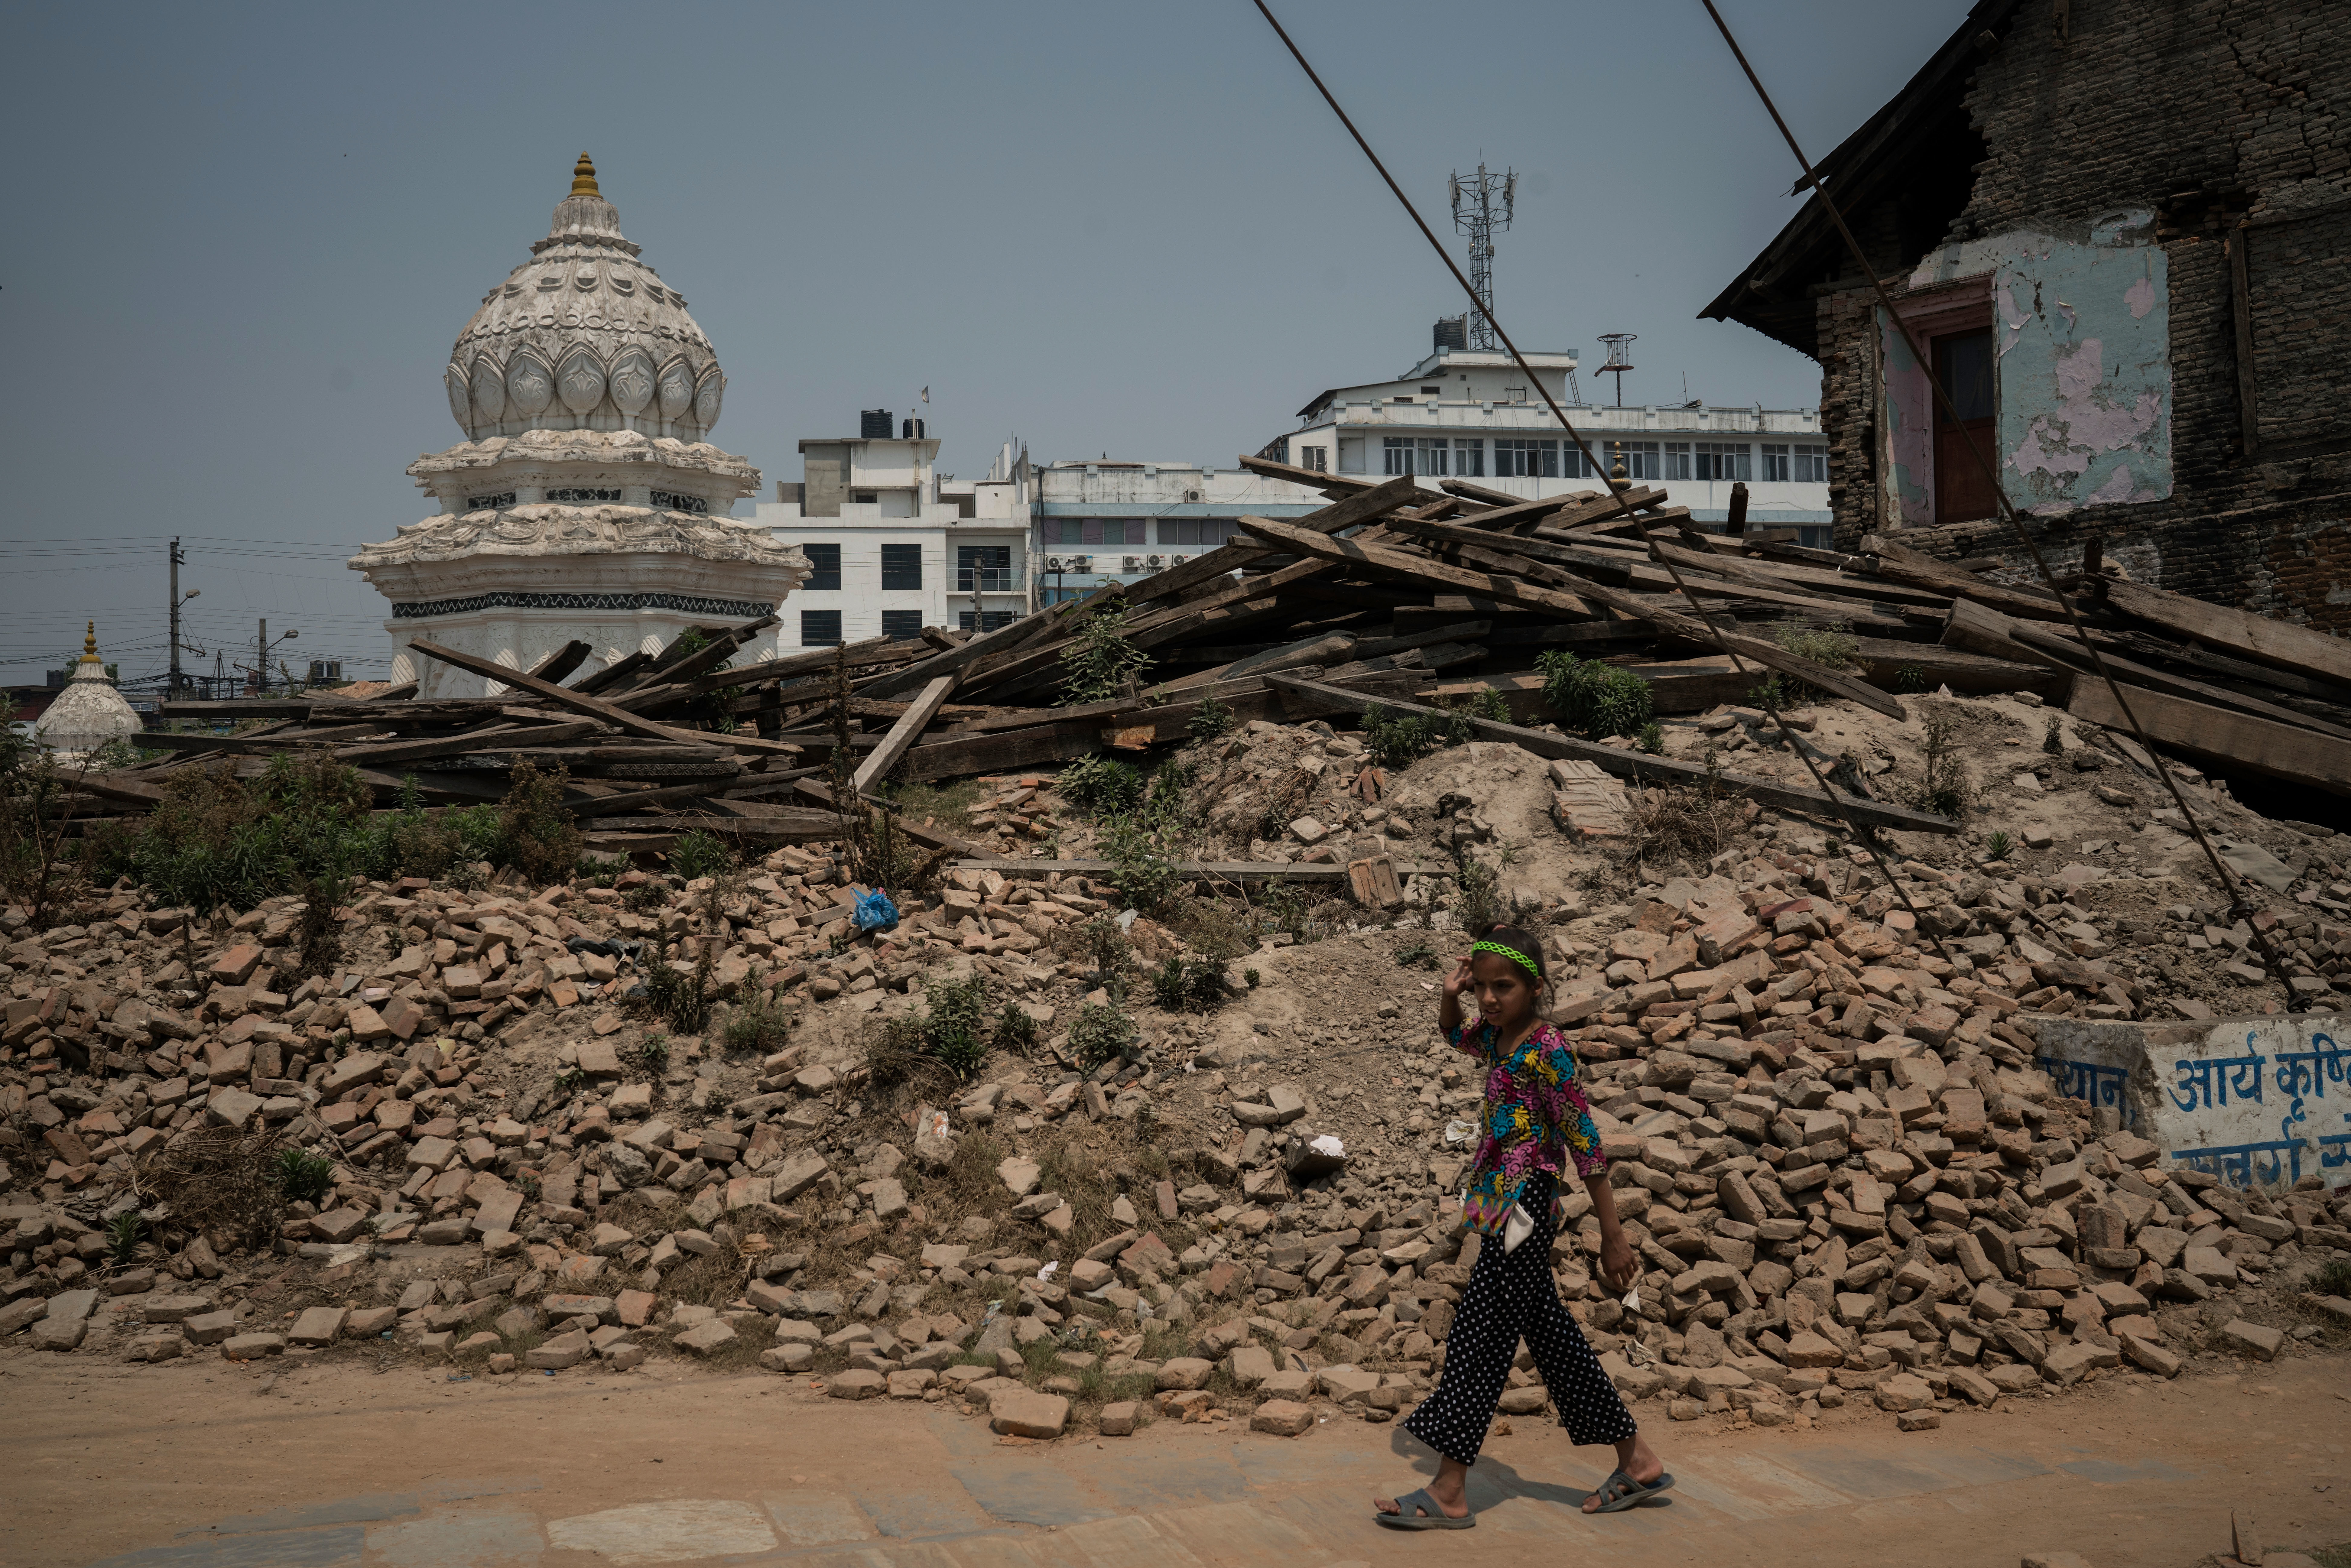 A girl walks past the rubble of the Kalmochan Mahadev temple on April 25, 2016 in Kathmandu, Nepal. A 7.8-magnitude earthquake struck here on April 25, 2015. An estimated 9,000 people died.